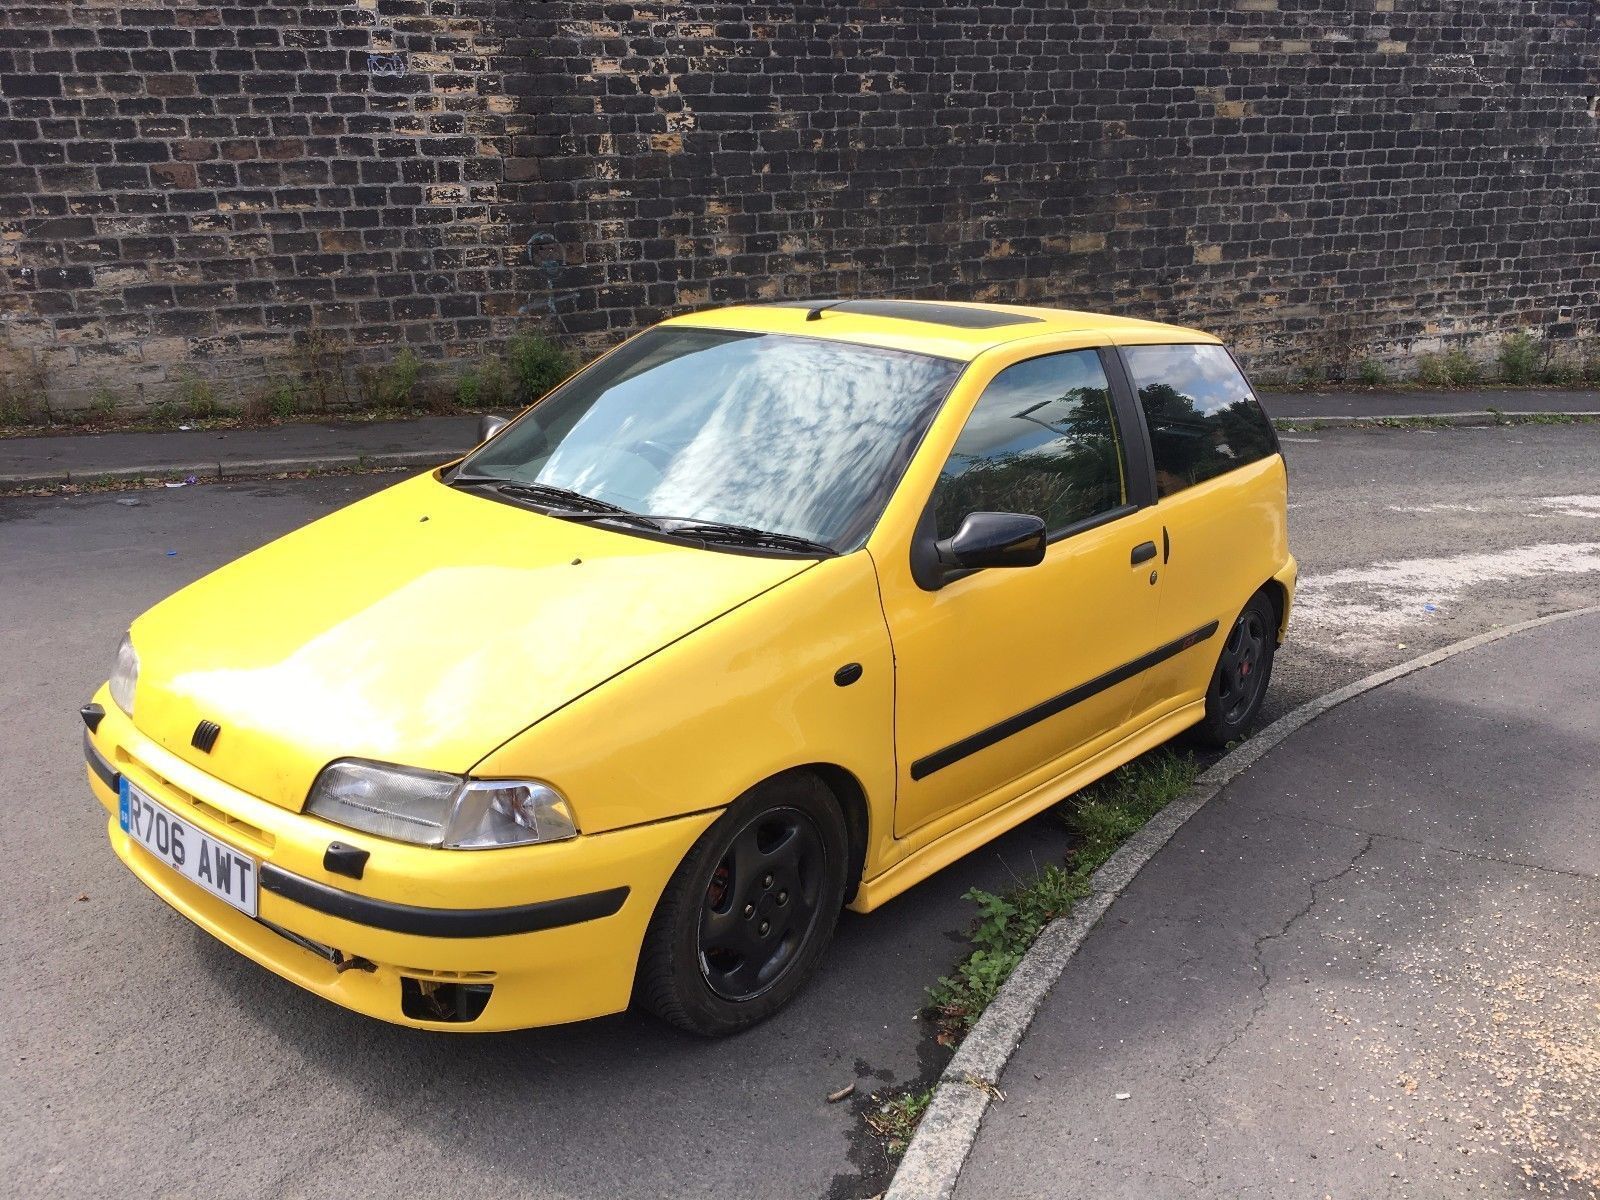 this fiat punto gt turbo gt yellow project car spares or repairs px welcome is for sale 80s. Black Bedroom Furniture Sets. Home Design Ideas